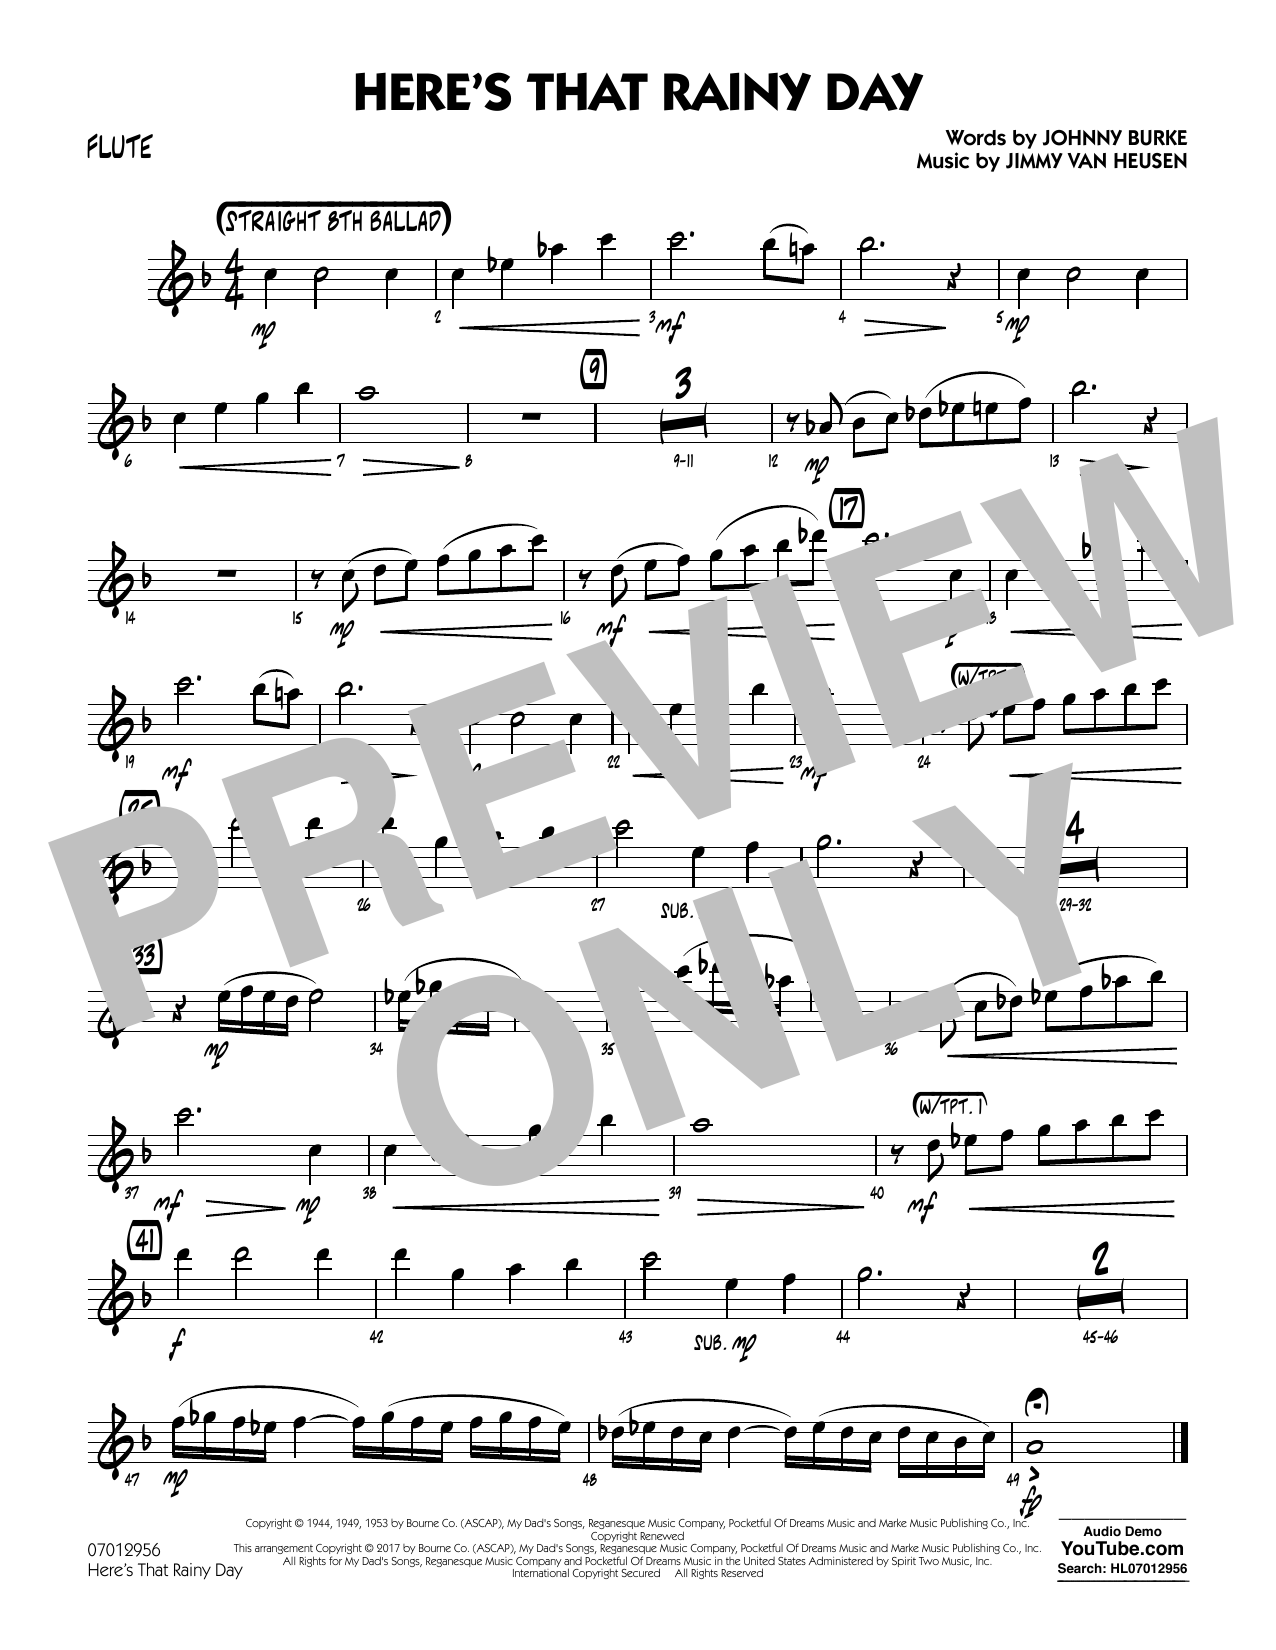 Here's That Rainy Day - Flute Sheet Music